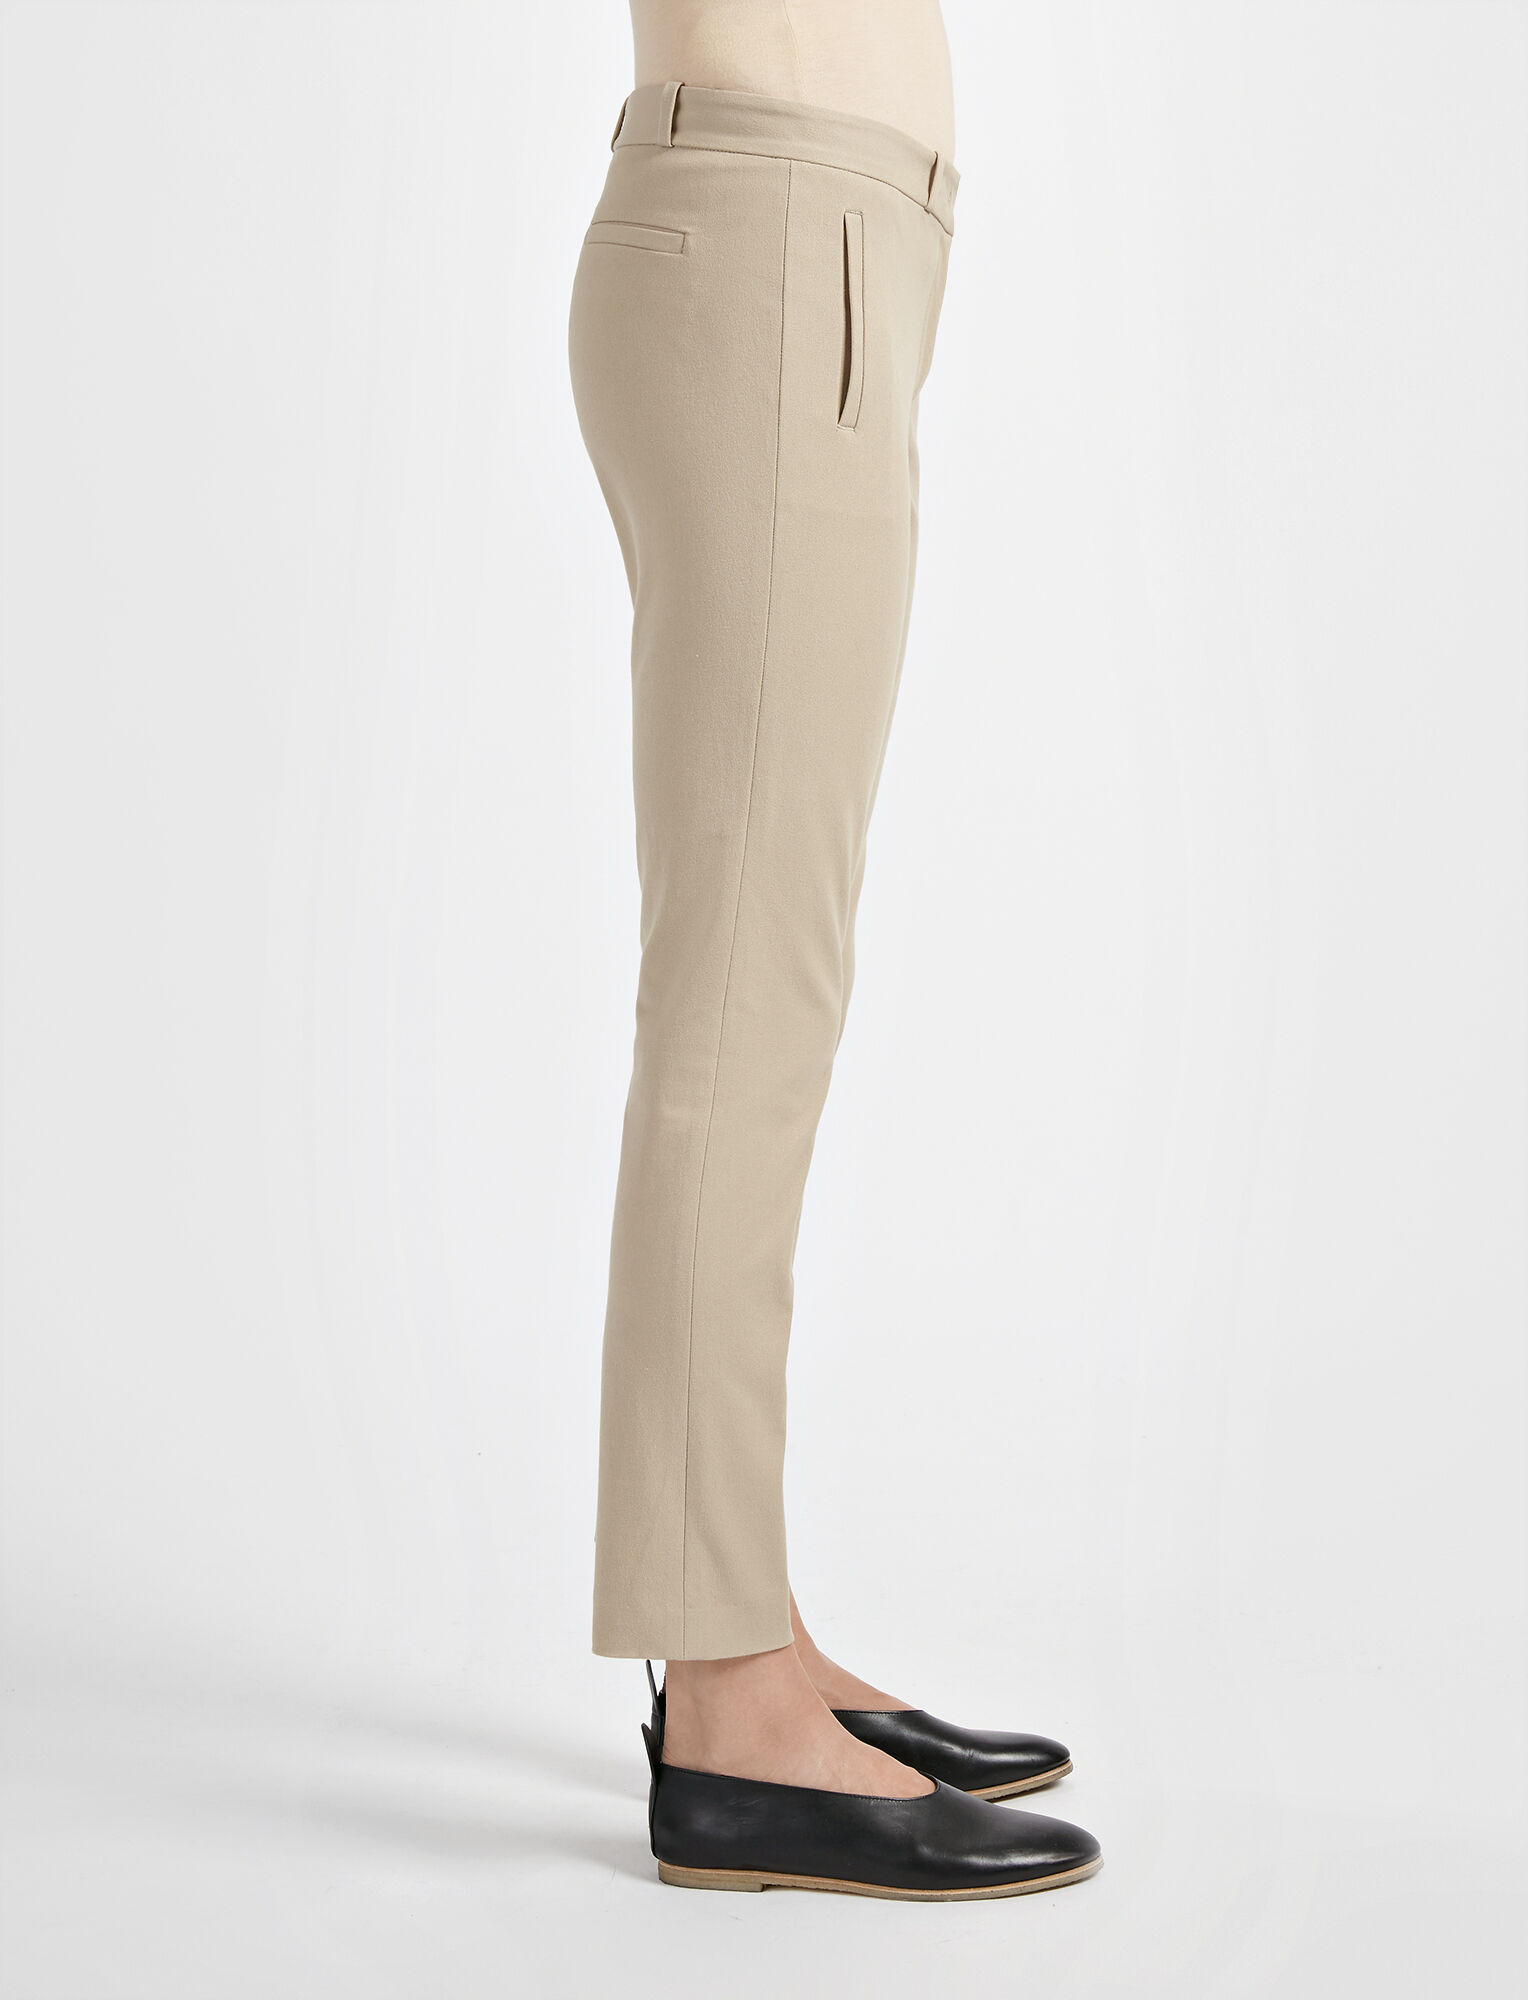 Joseph, Gabardine Stretch New Eliston Trouser, in BEIGE